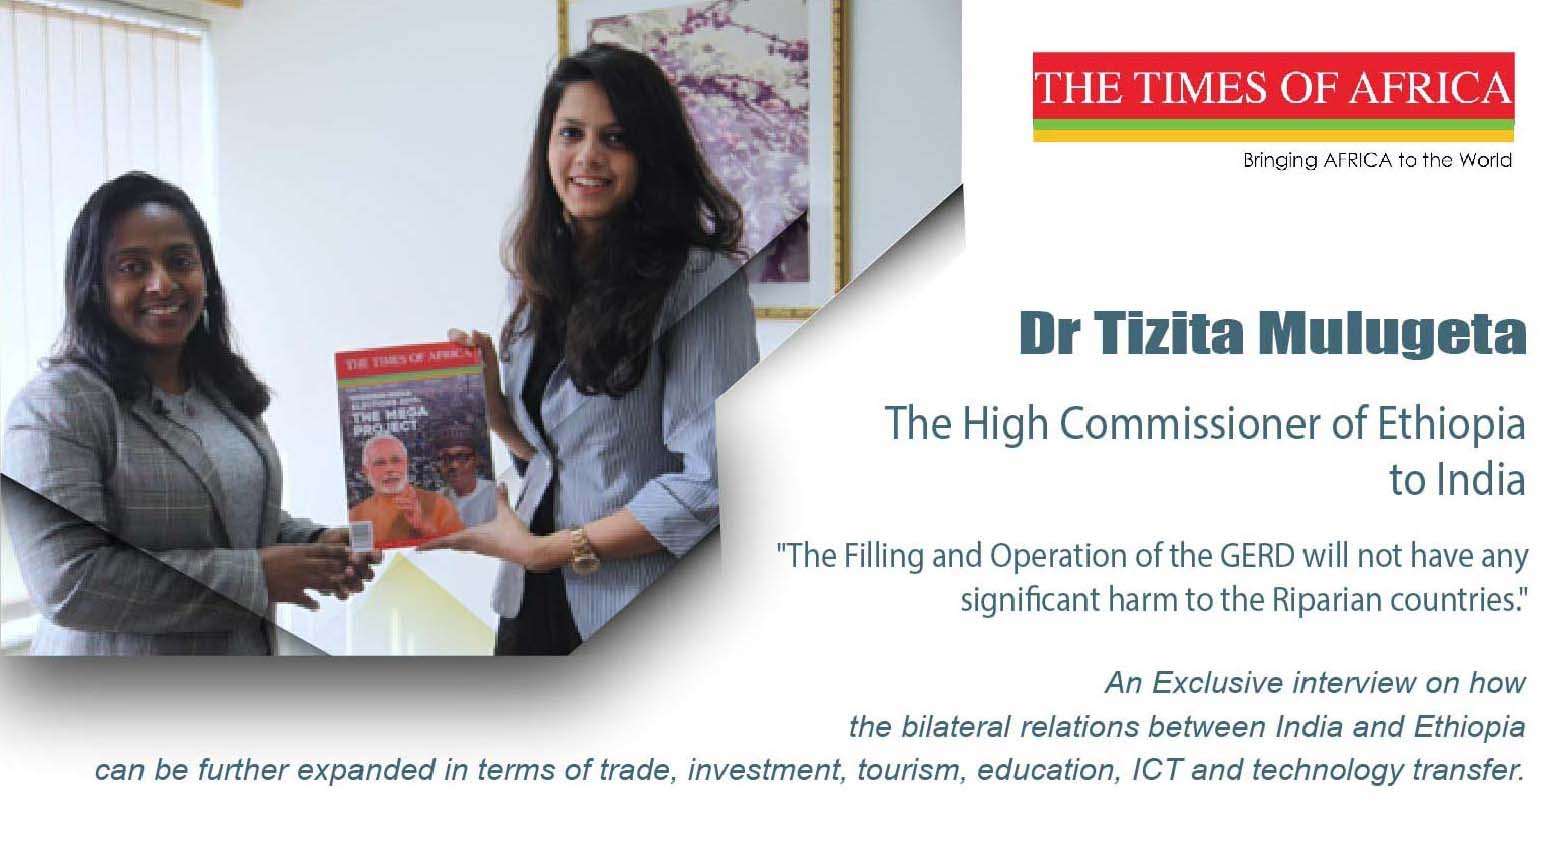 Interview with the High Commissioner of Ethiopia Dr Tizita Mulugeta